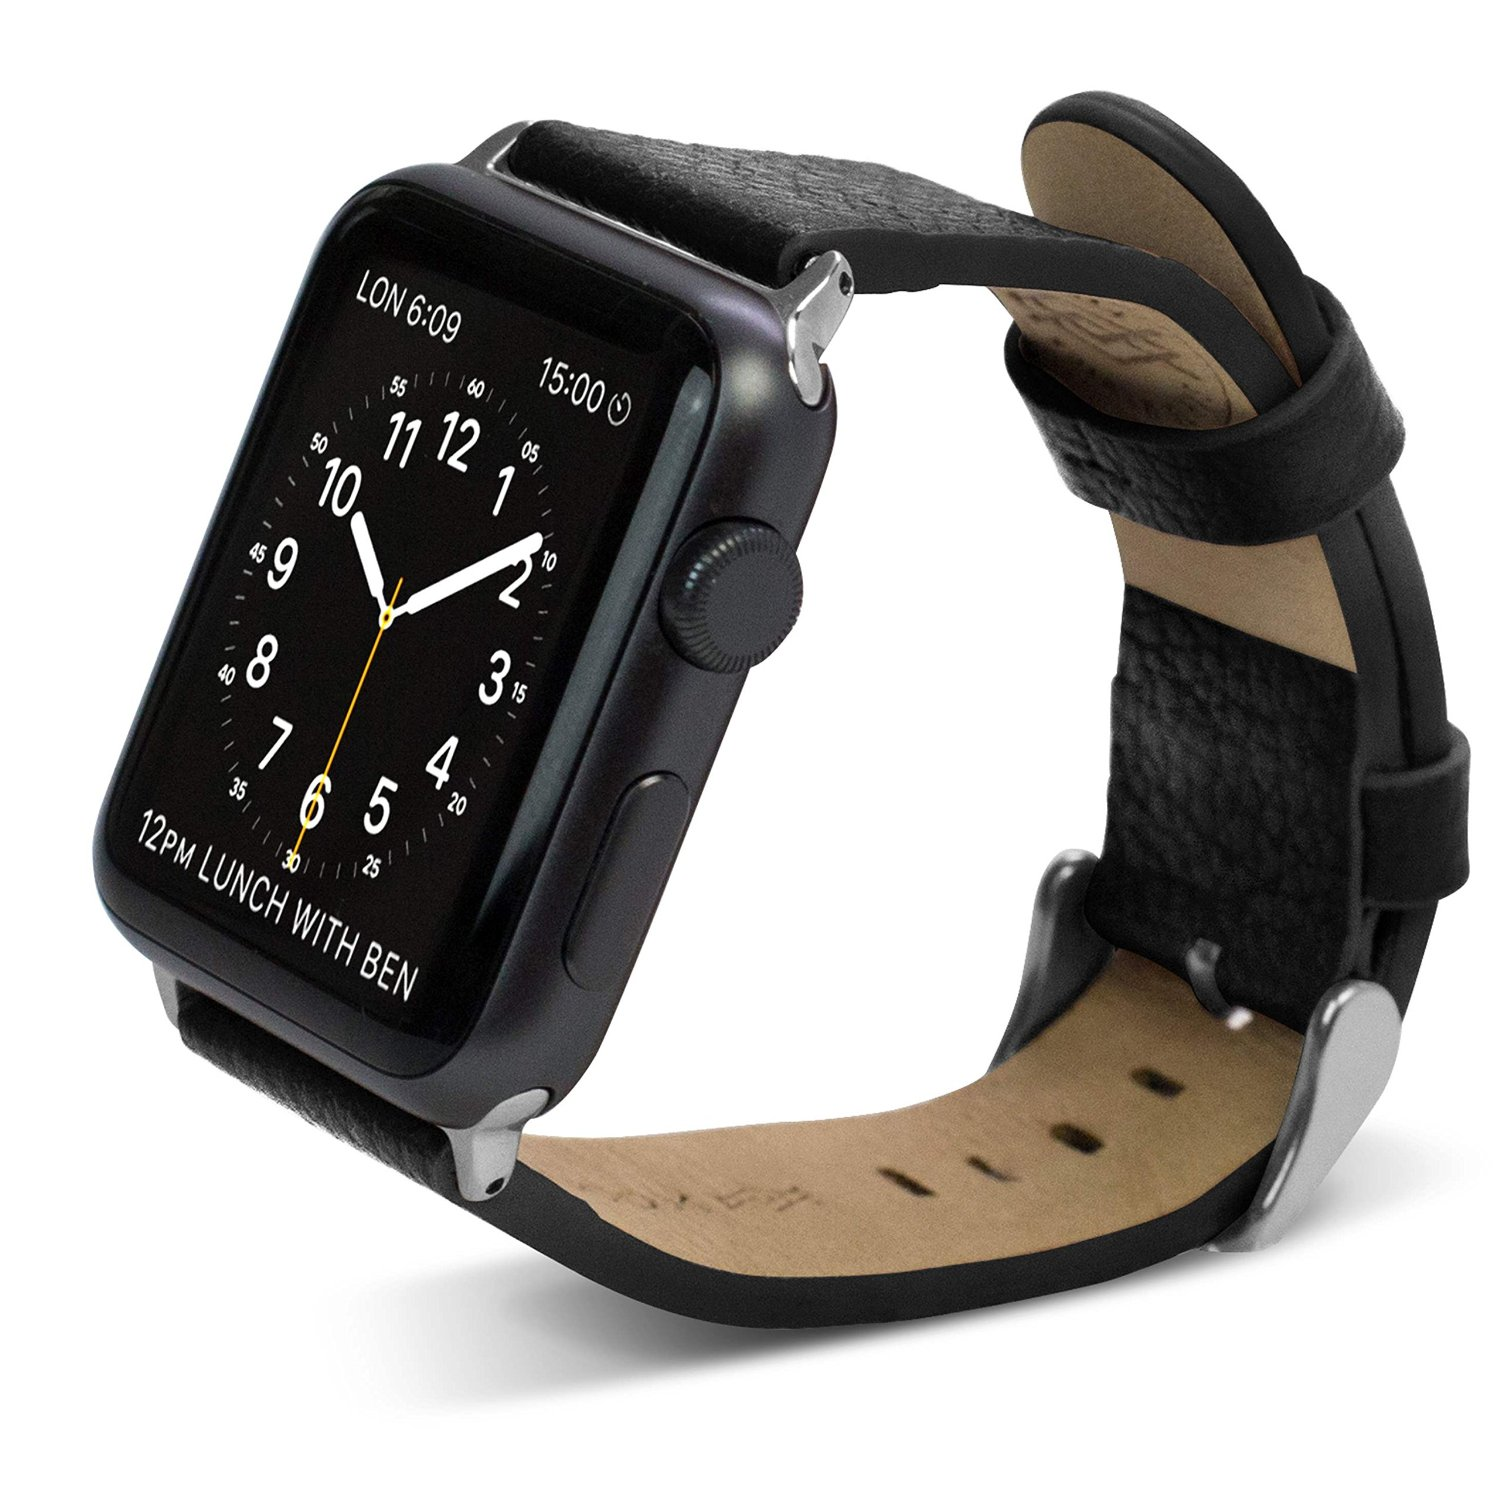 42mm Apple Watch Repalcement Band, X-Doria Lux Band, Genuine Leather, Black Leather for Apple Watch All Models